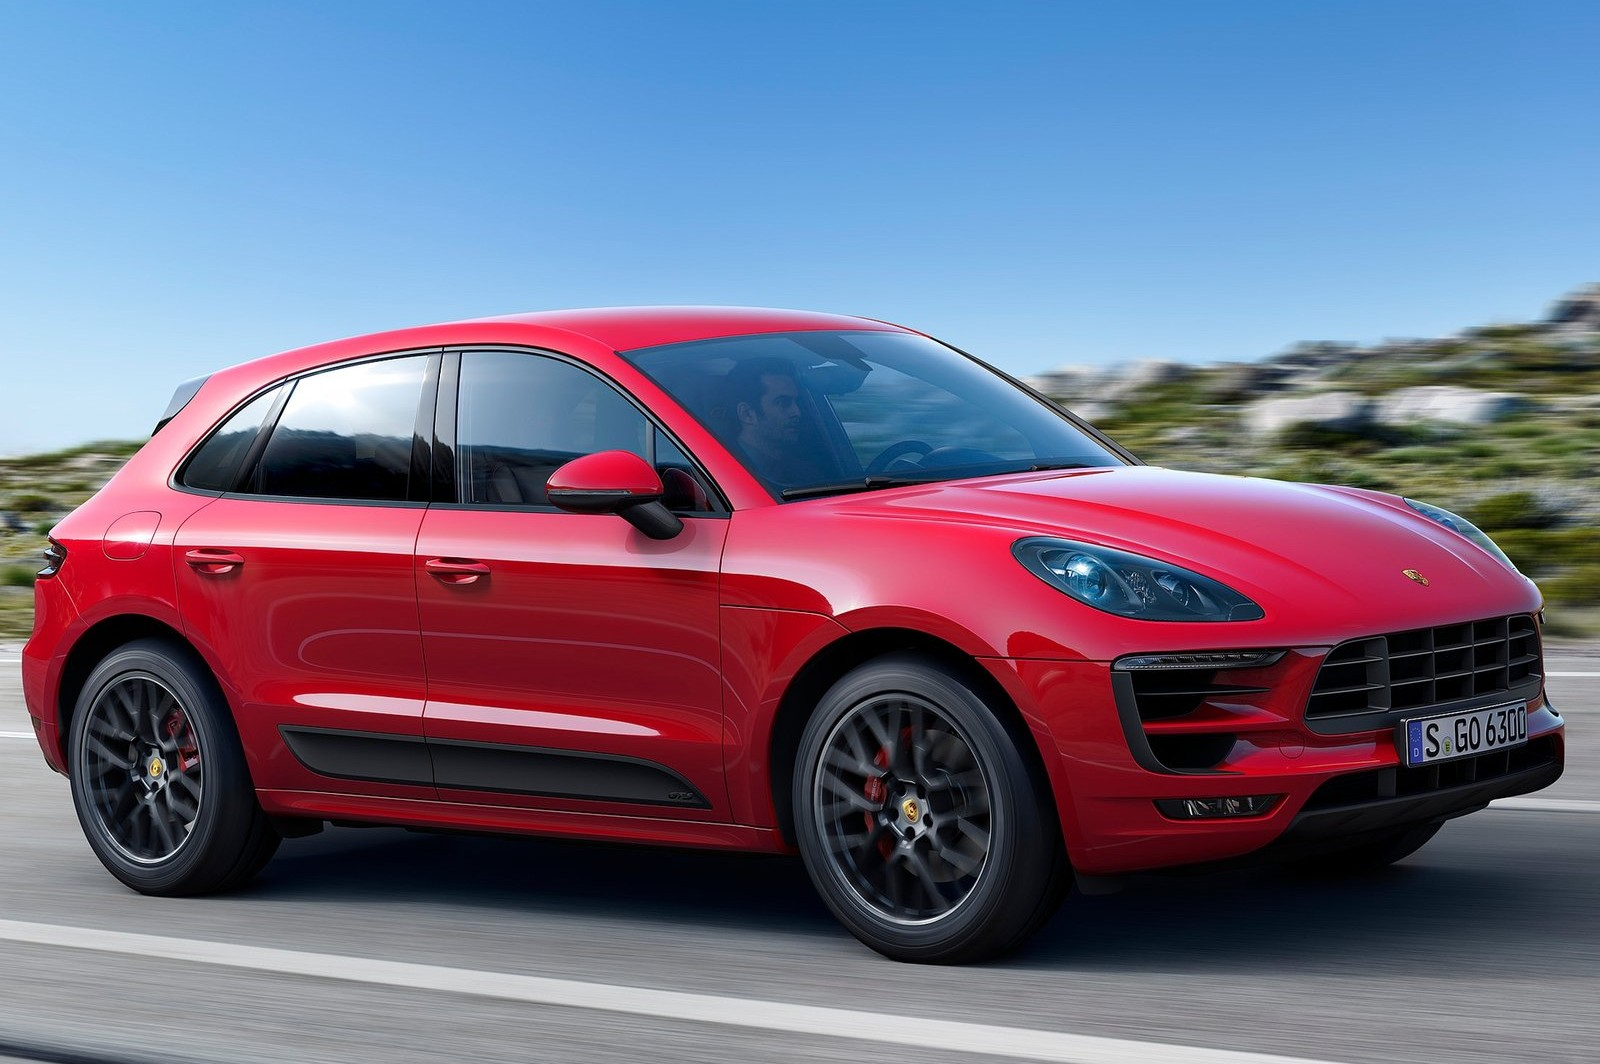 Porsche's Canadian news is the Macan GTS, a new version of the company's compact crossover that slots in between the existing S and Turbo trims.